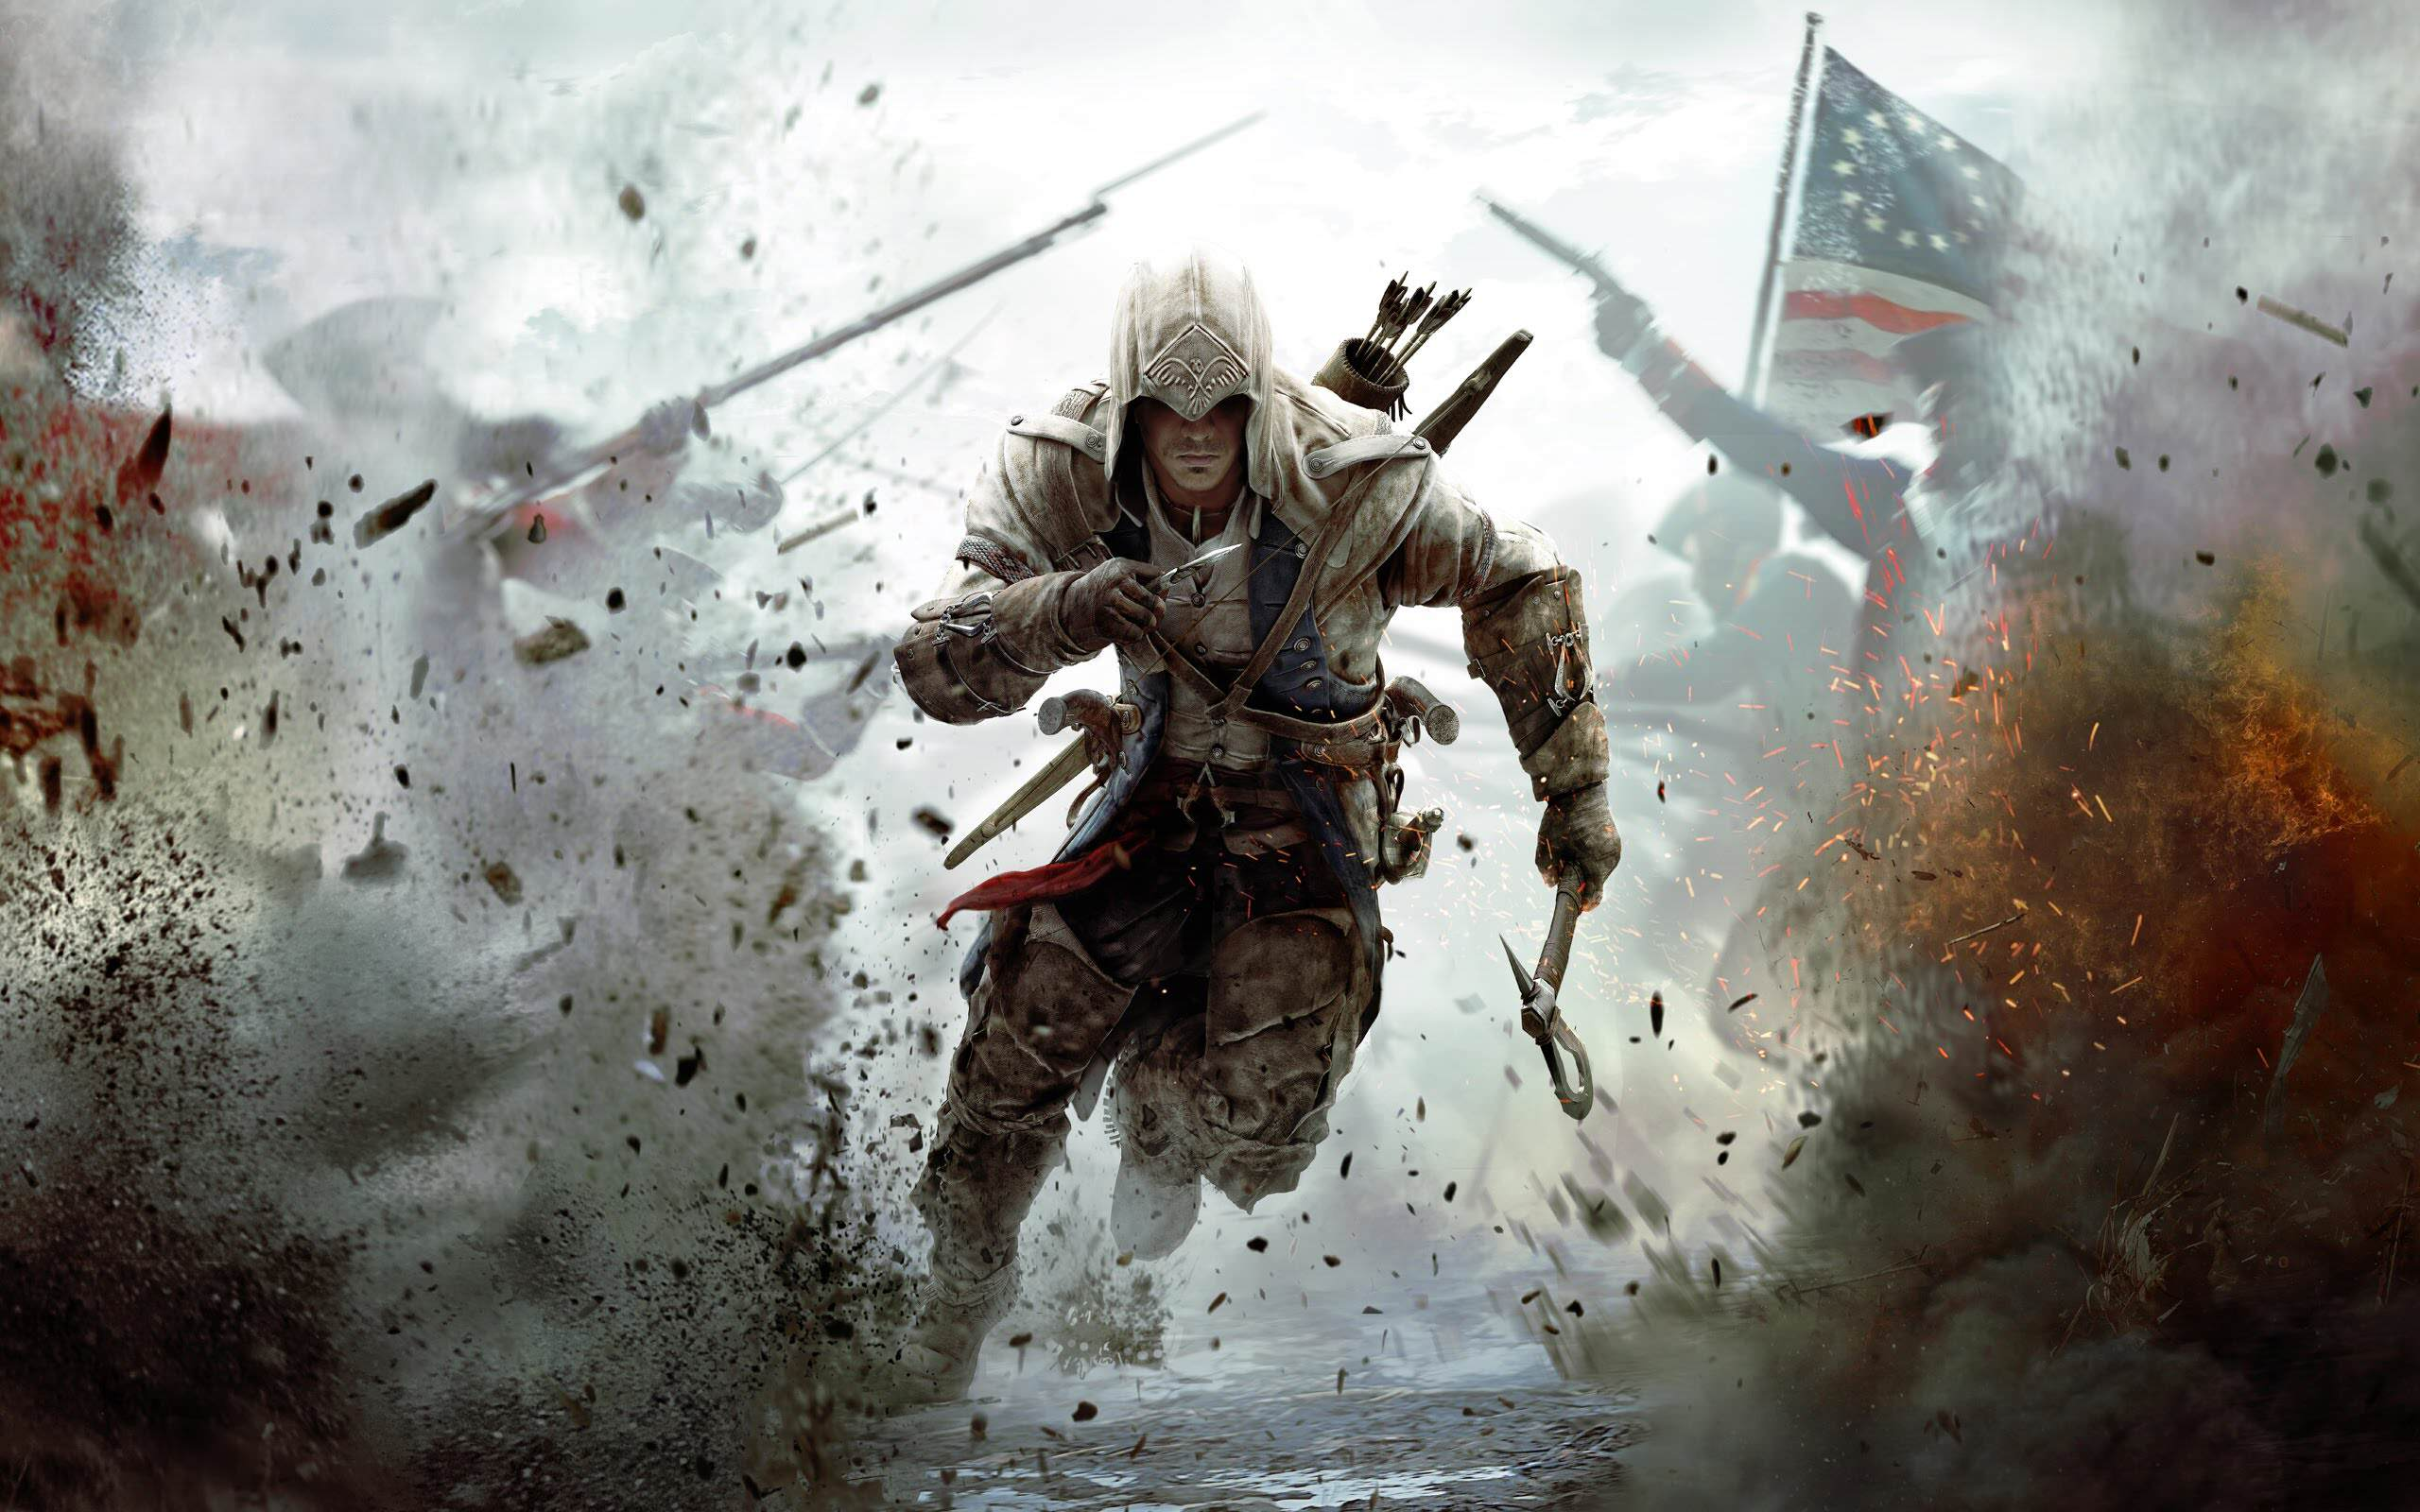 maxresdefault 1 11 Assassins Creed 3 Studio Developing Massive New Ubisoft Project